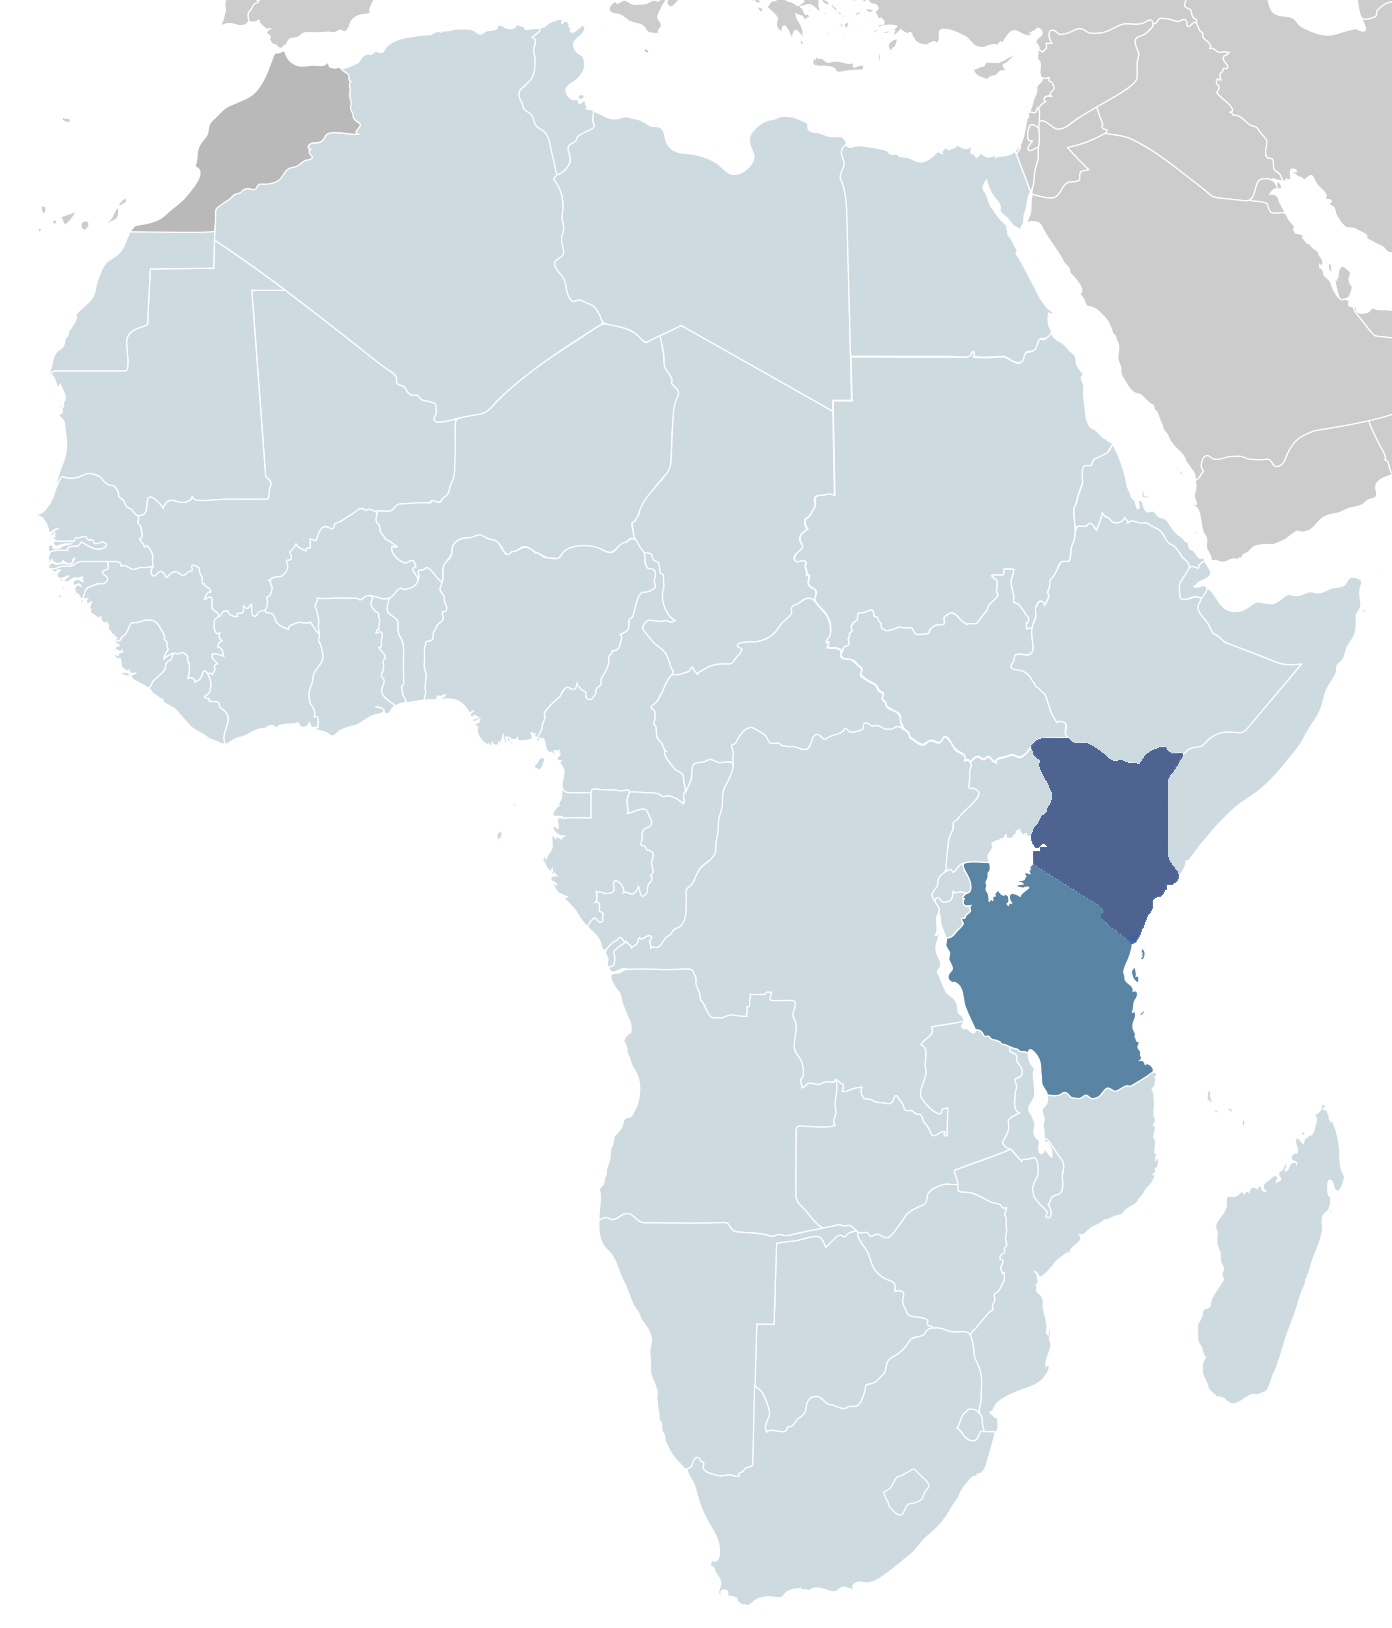 Projects in Kenya and Tanzania